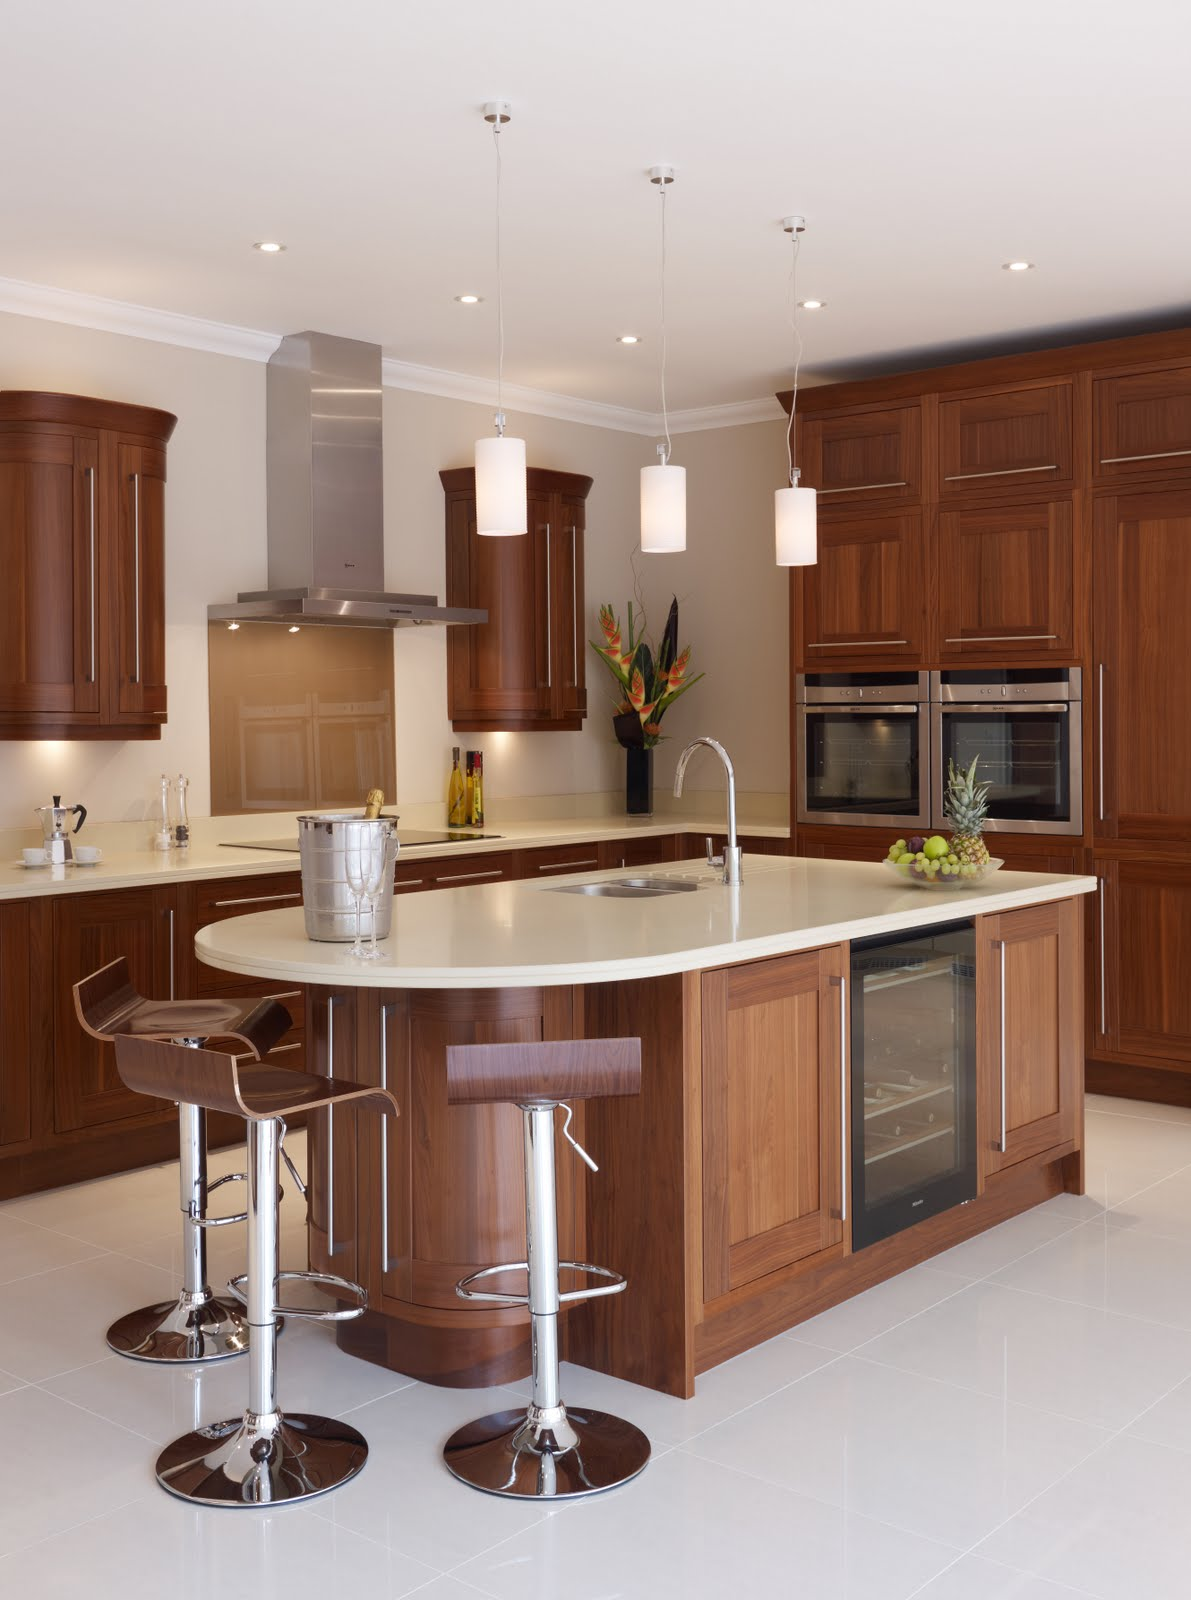 Concept interiors top 10 tips for a stylish yet practical - Island or peninsula kitchen ...